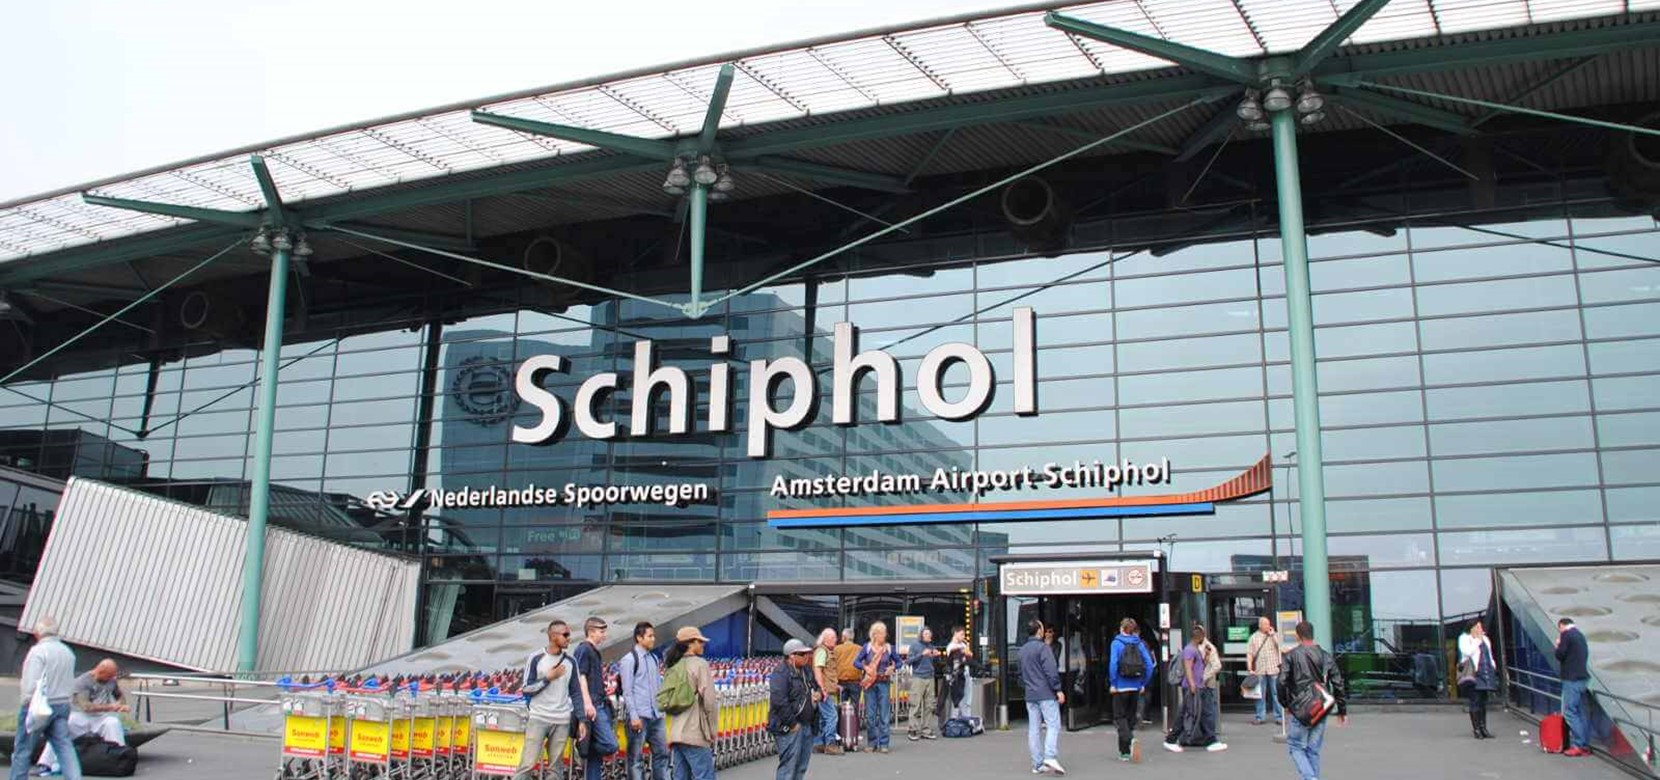 Start your Dutch adventure at Amsterdam Airport